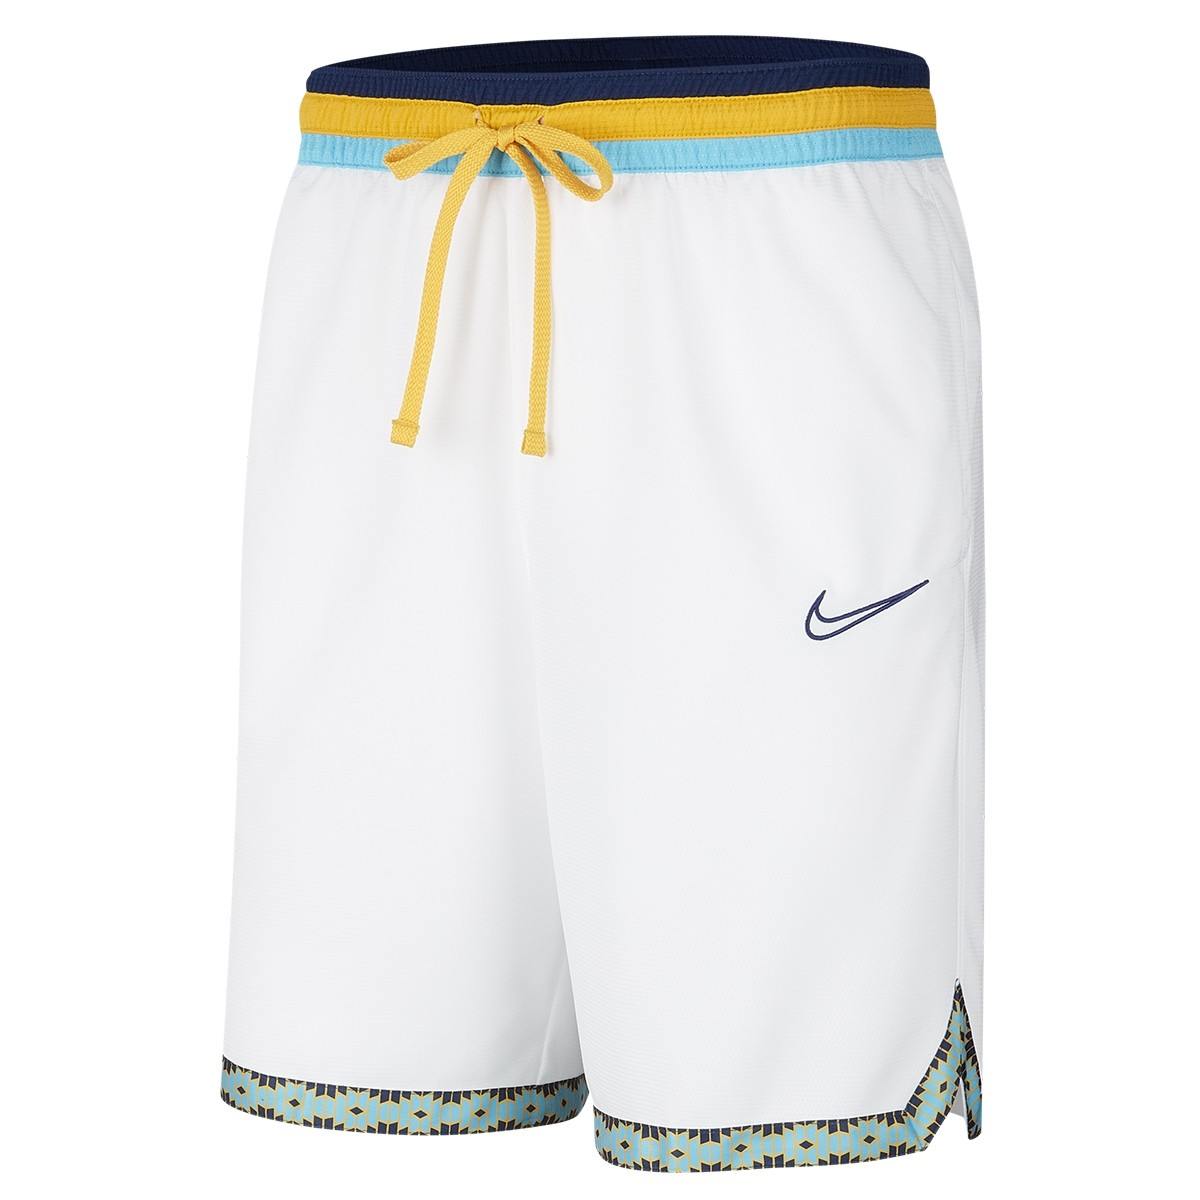 Nike DNA Short 'Blue Void'